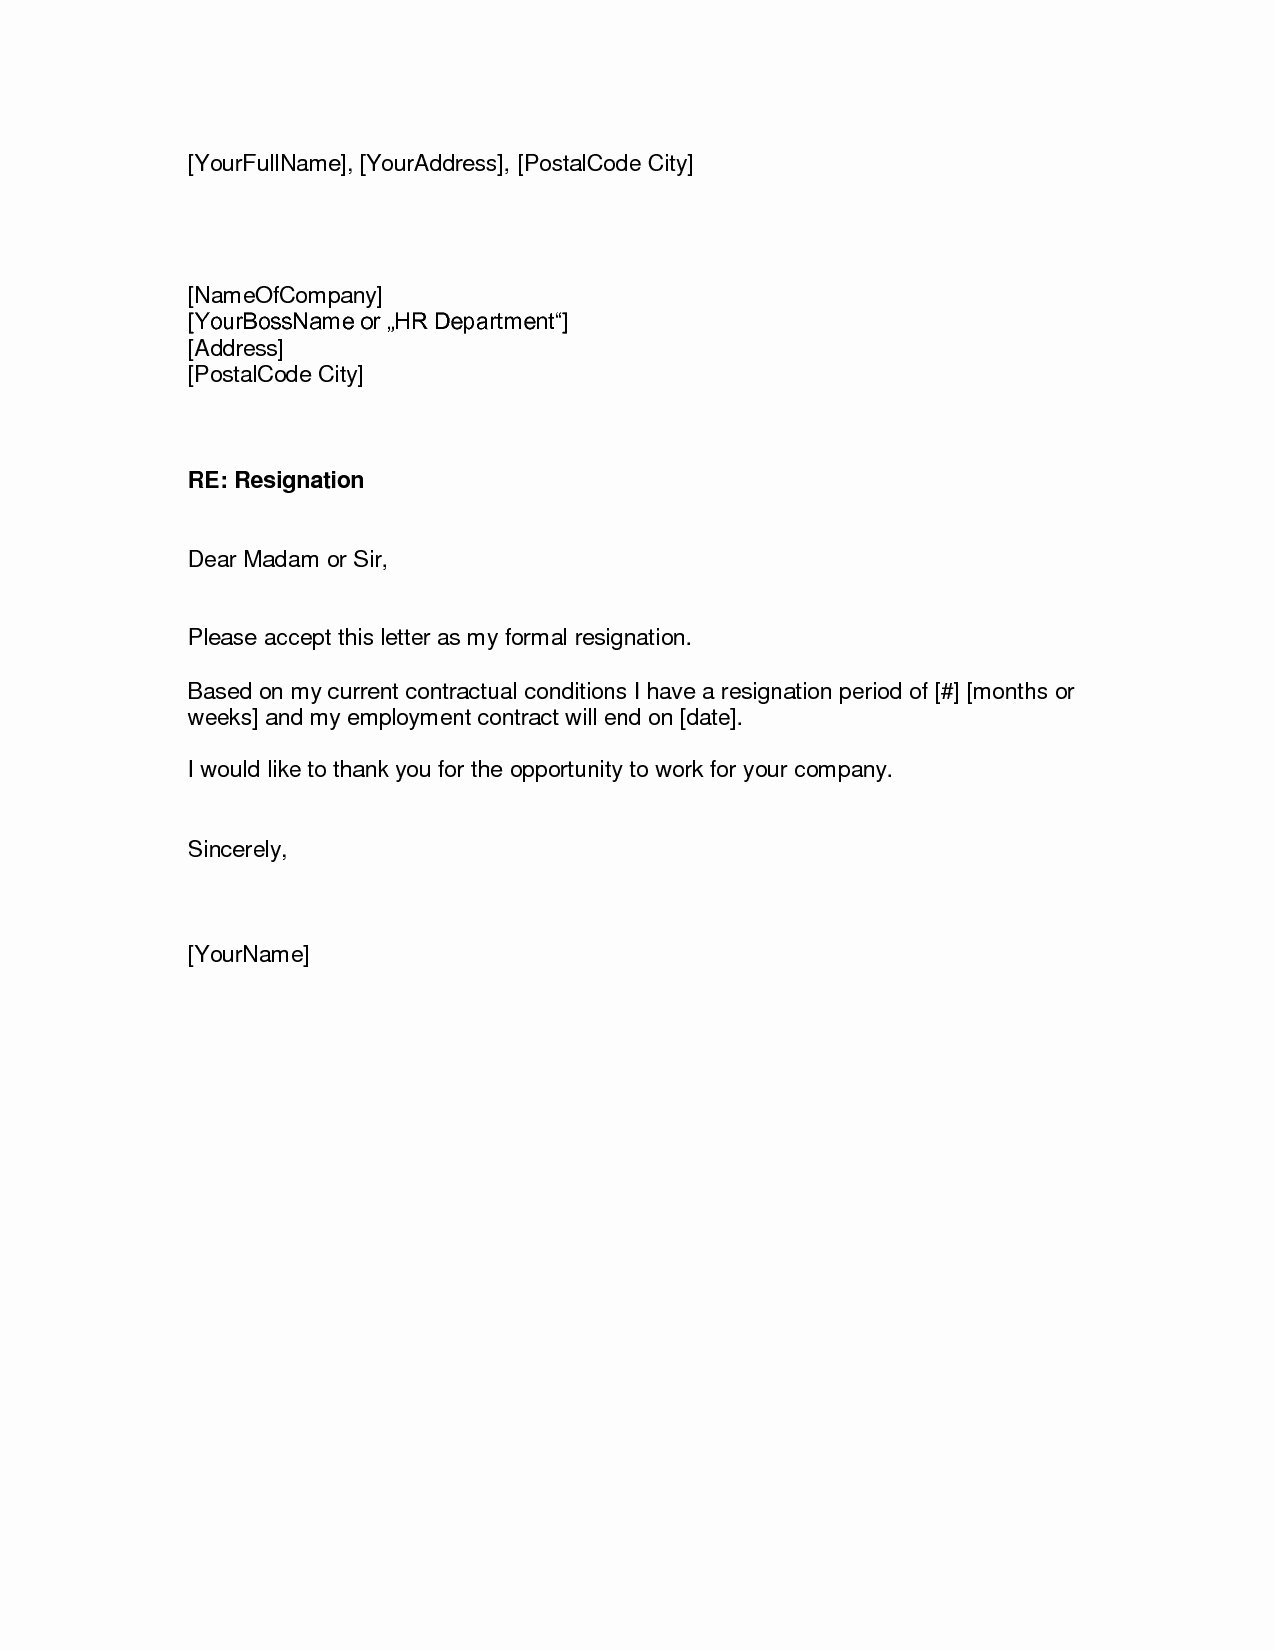 Resignation Letter Template Free Inspirational How to Write Easy Simple Resignation Letter Sample